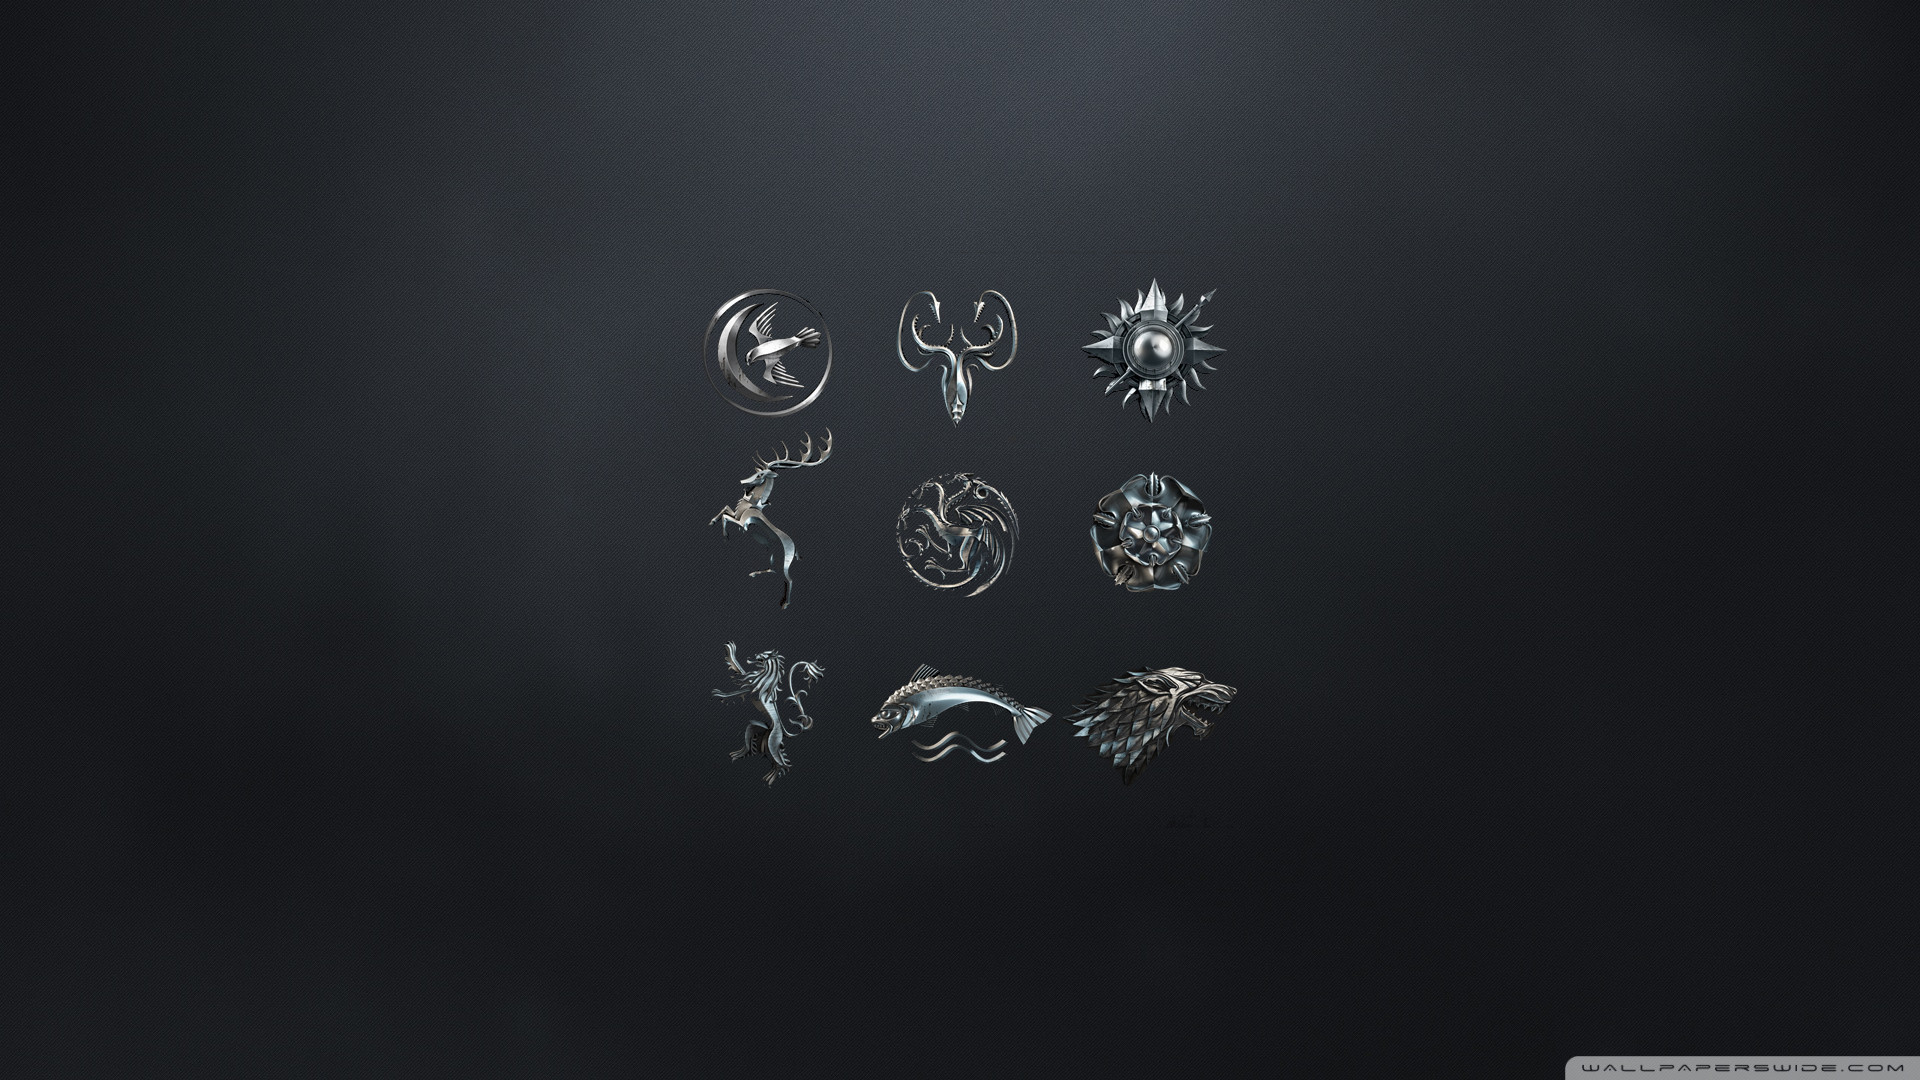 ] Need help finding a Game of Thrones Wallpaper gameofthrones 1920x1080